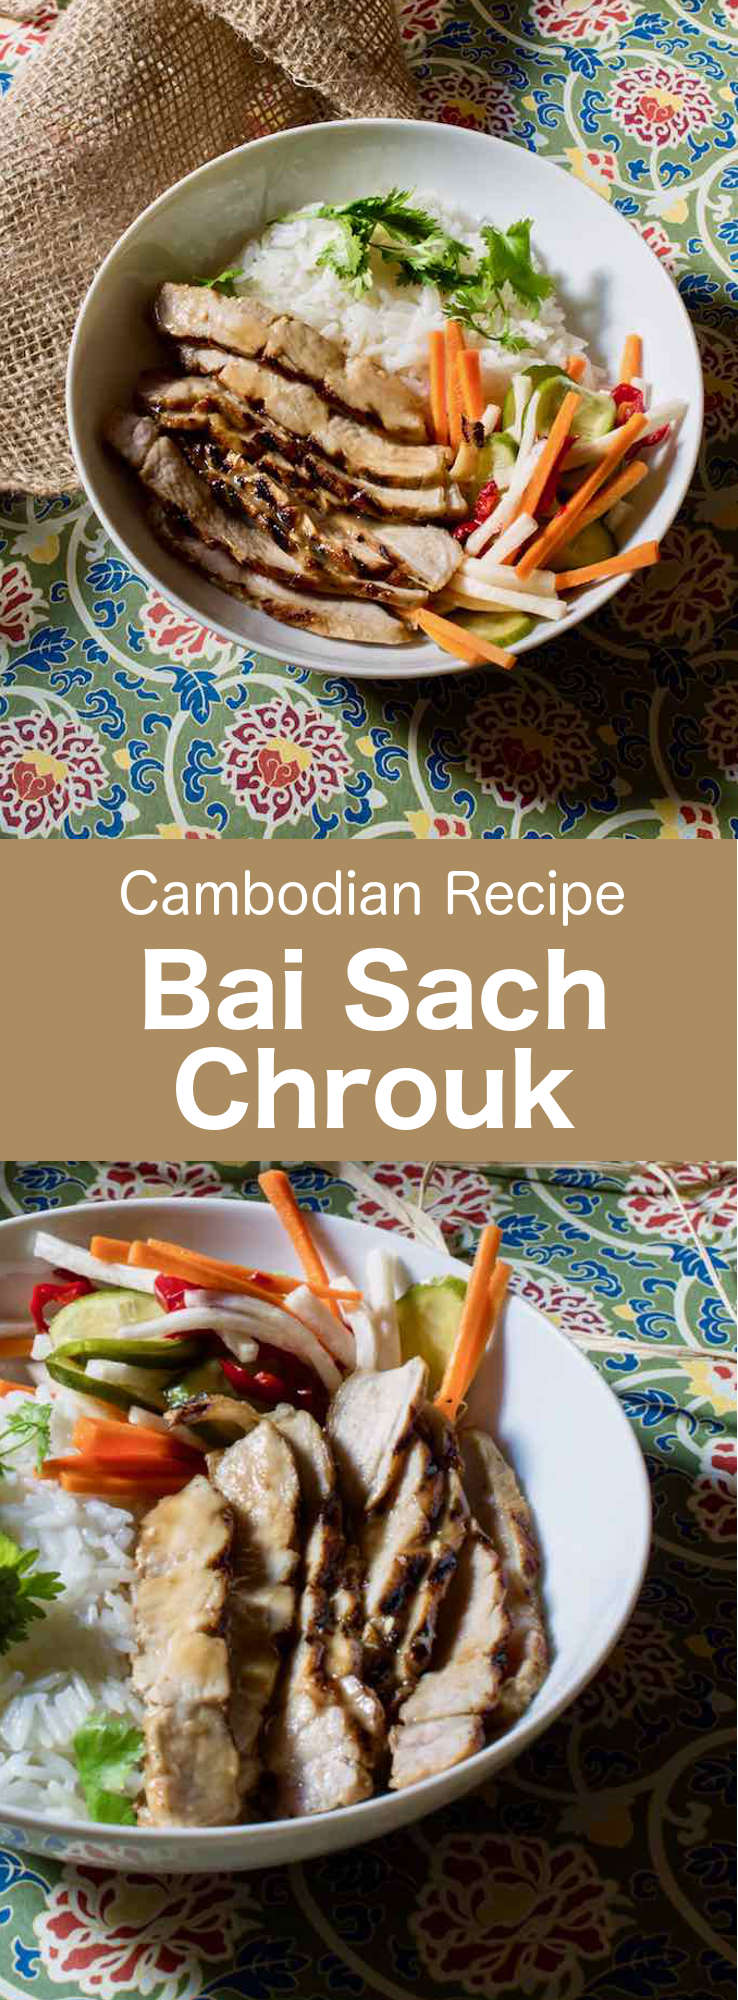 Pork with rice or bai sach chrouk is one of Cambodia's most popular breakfast dishes. It is often offered by street vendors. #Cambodian #CambodianRecipe #CambodianCuisine #AsianCuisine #AsianRecipe #WorldCuisine #196flavors